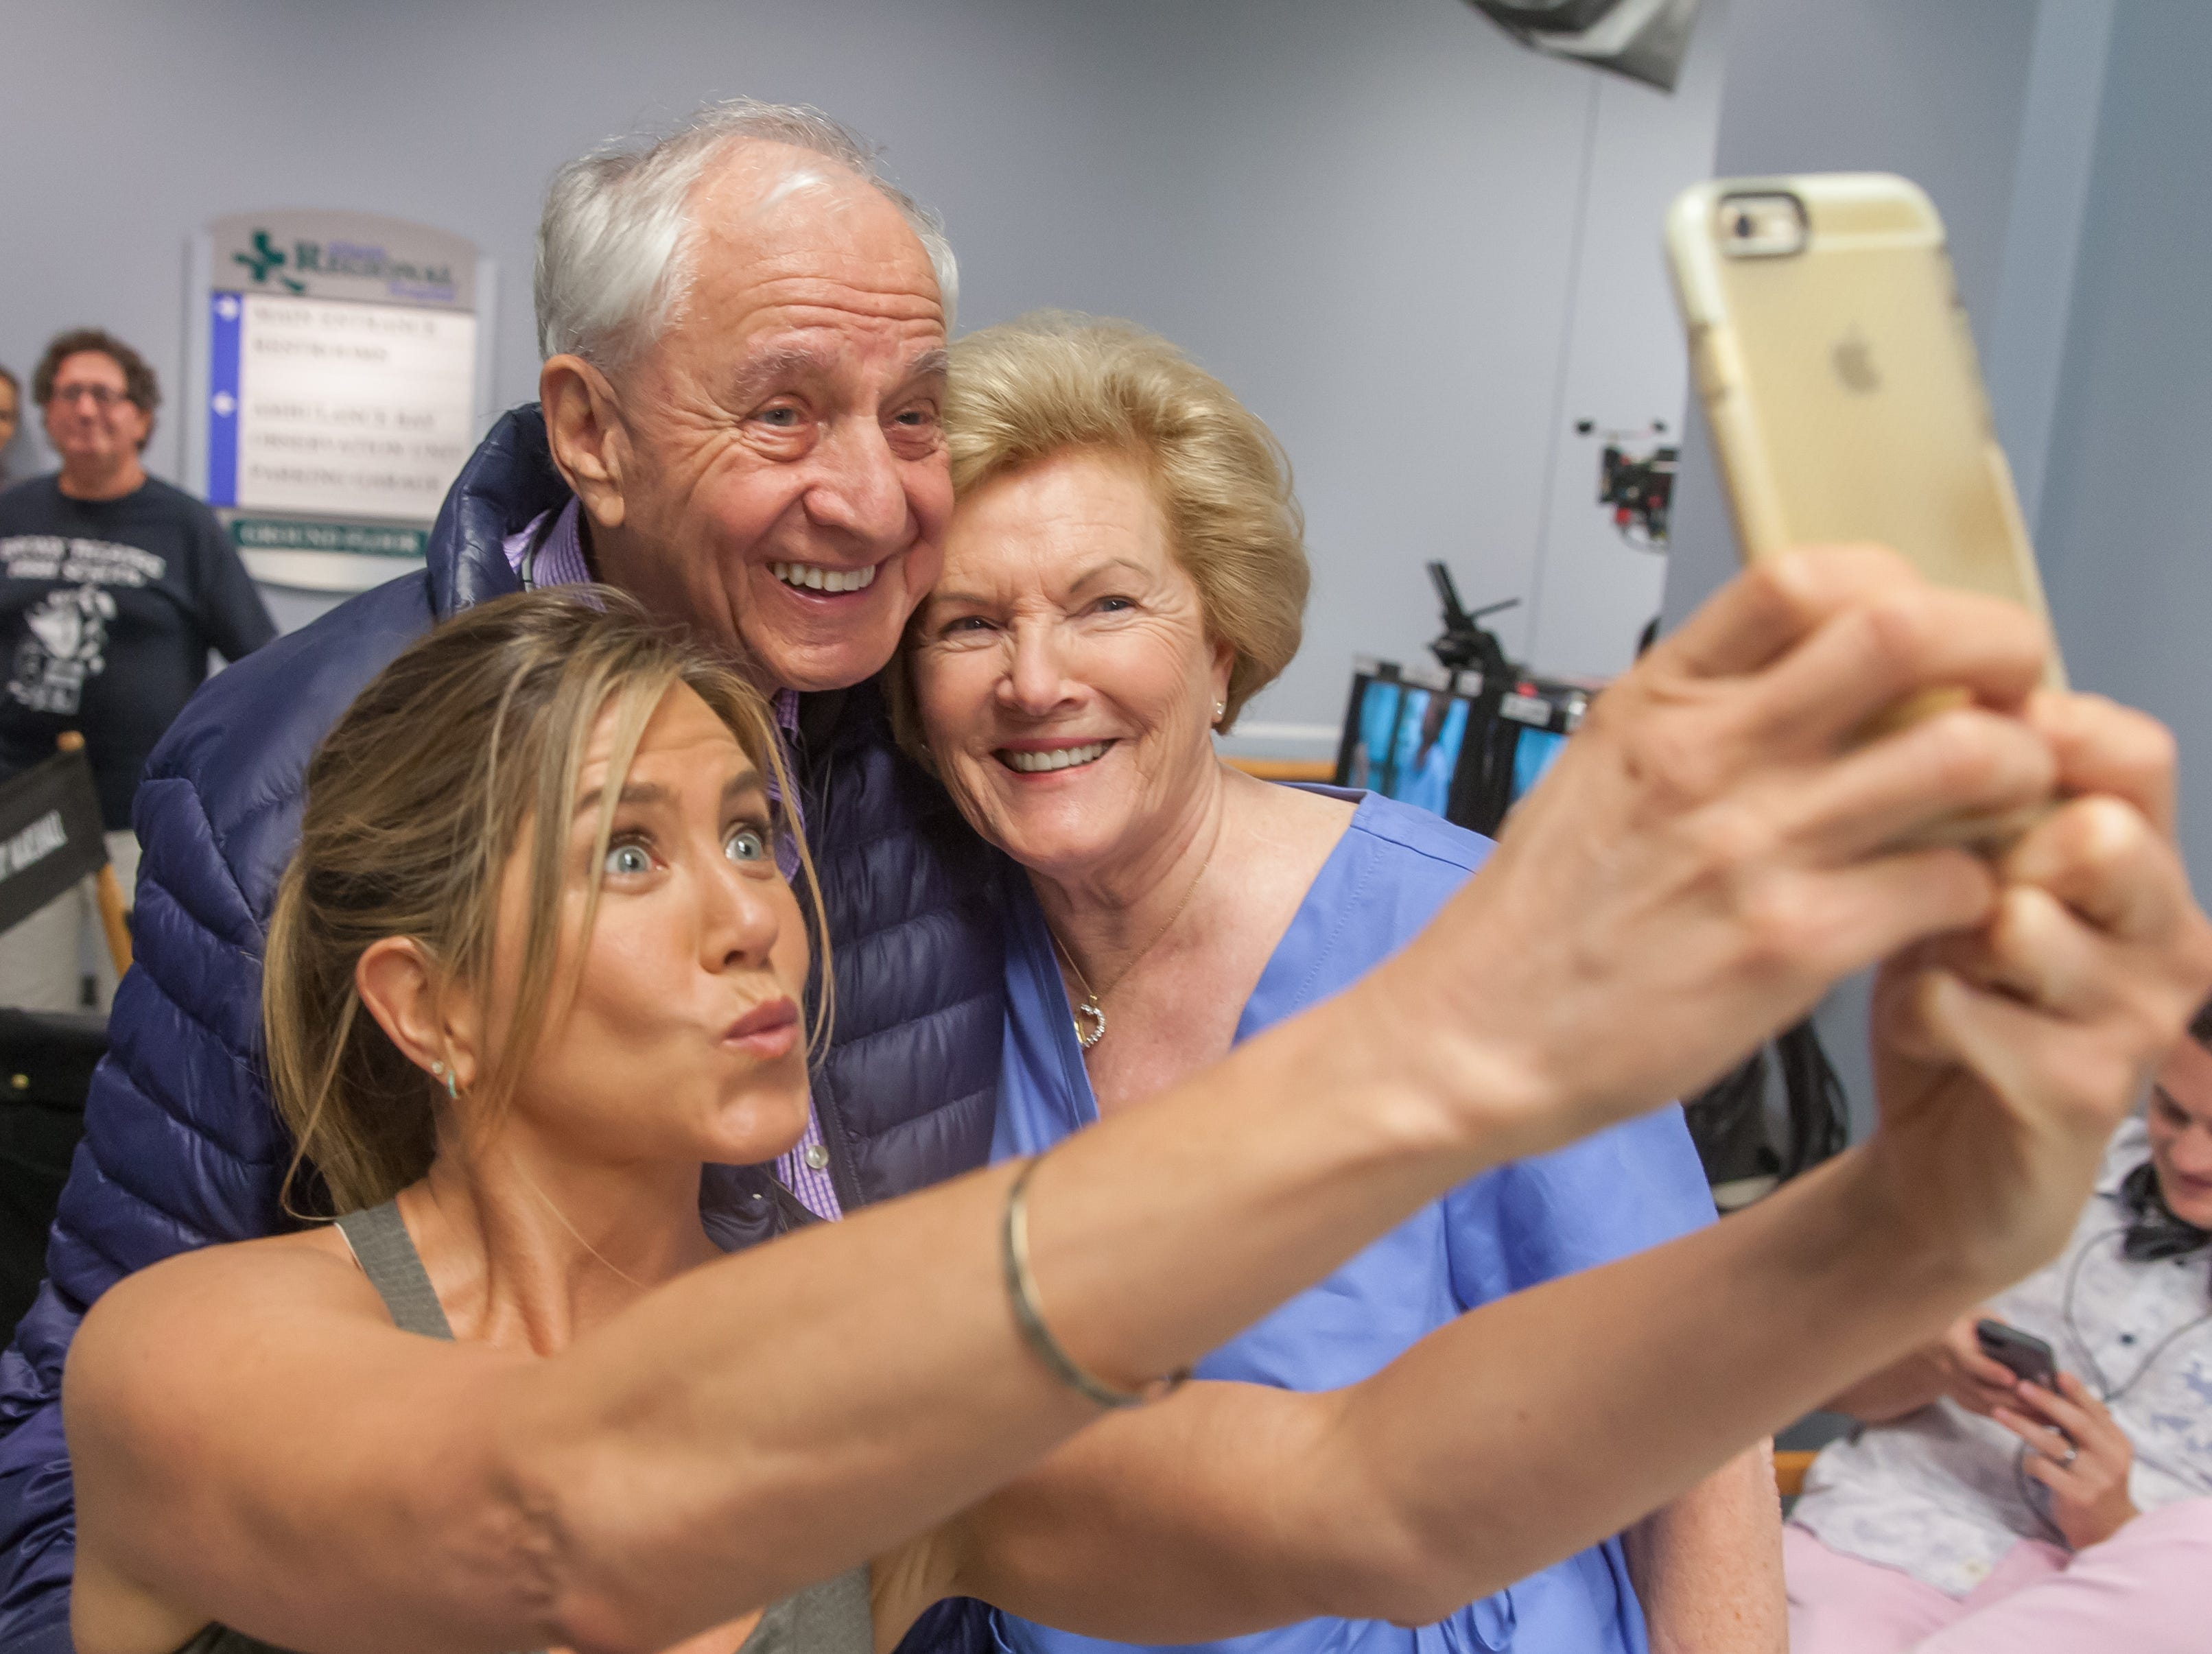 """While shooting her 2016 rom-com """"Mother's Day,"""" Aniston took the opportunity to shoot a selfie with director Garry Marshall and his wife Barbara."""